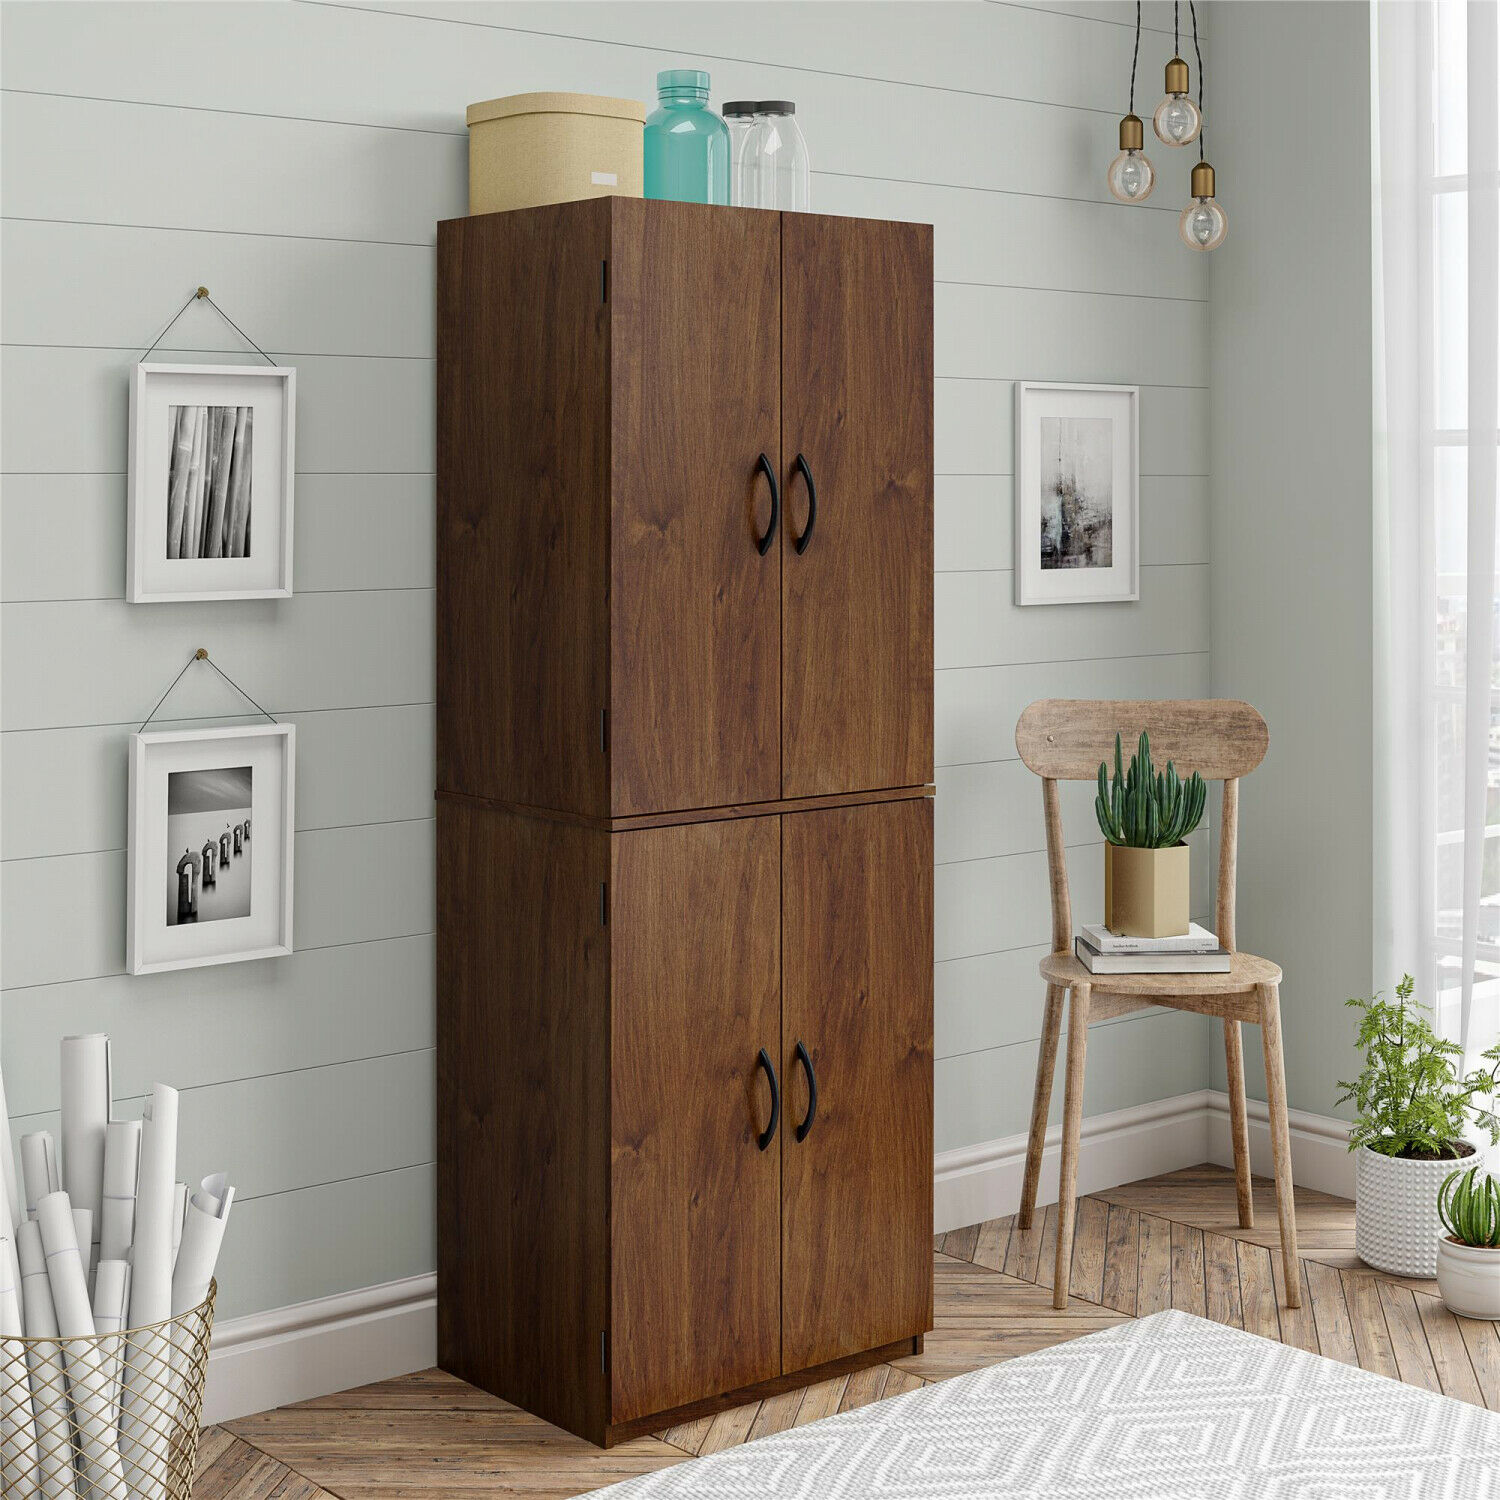 Kitchen Cabinets White Pantry Organizer Utility Cabinet Doors Storage Solutions For Sale Online Ebay